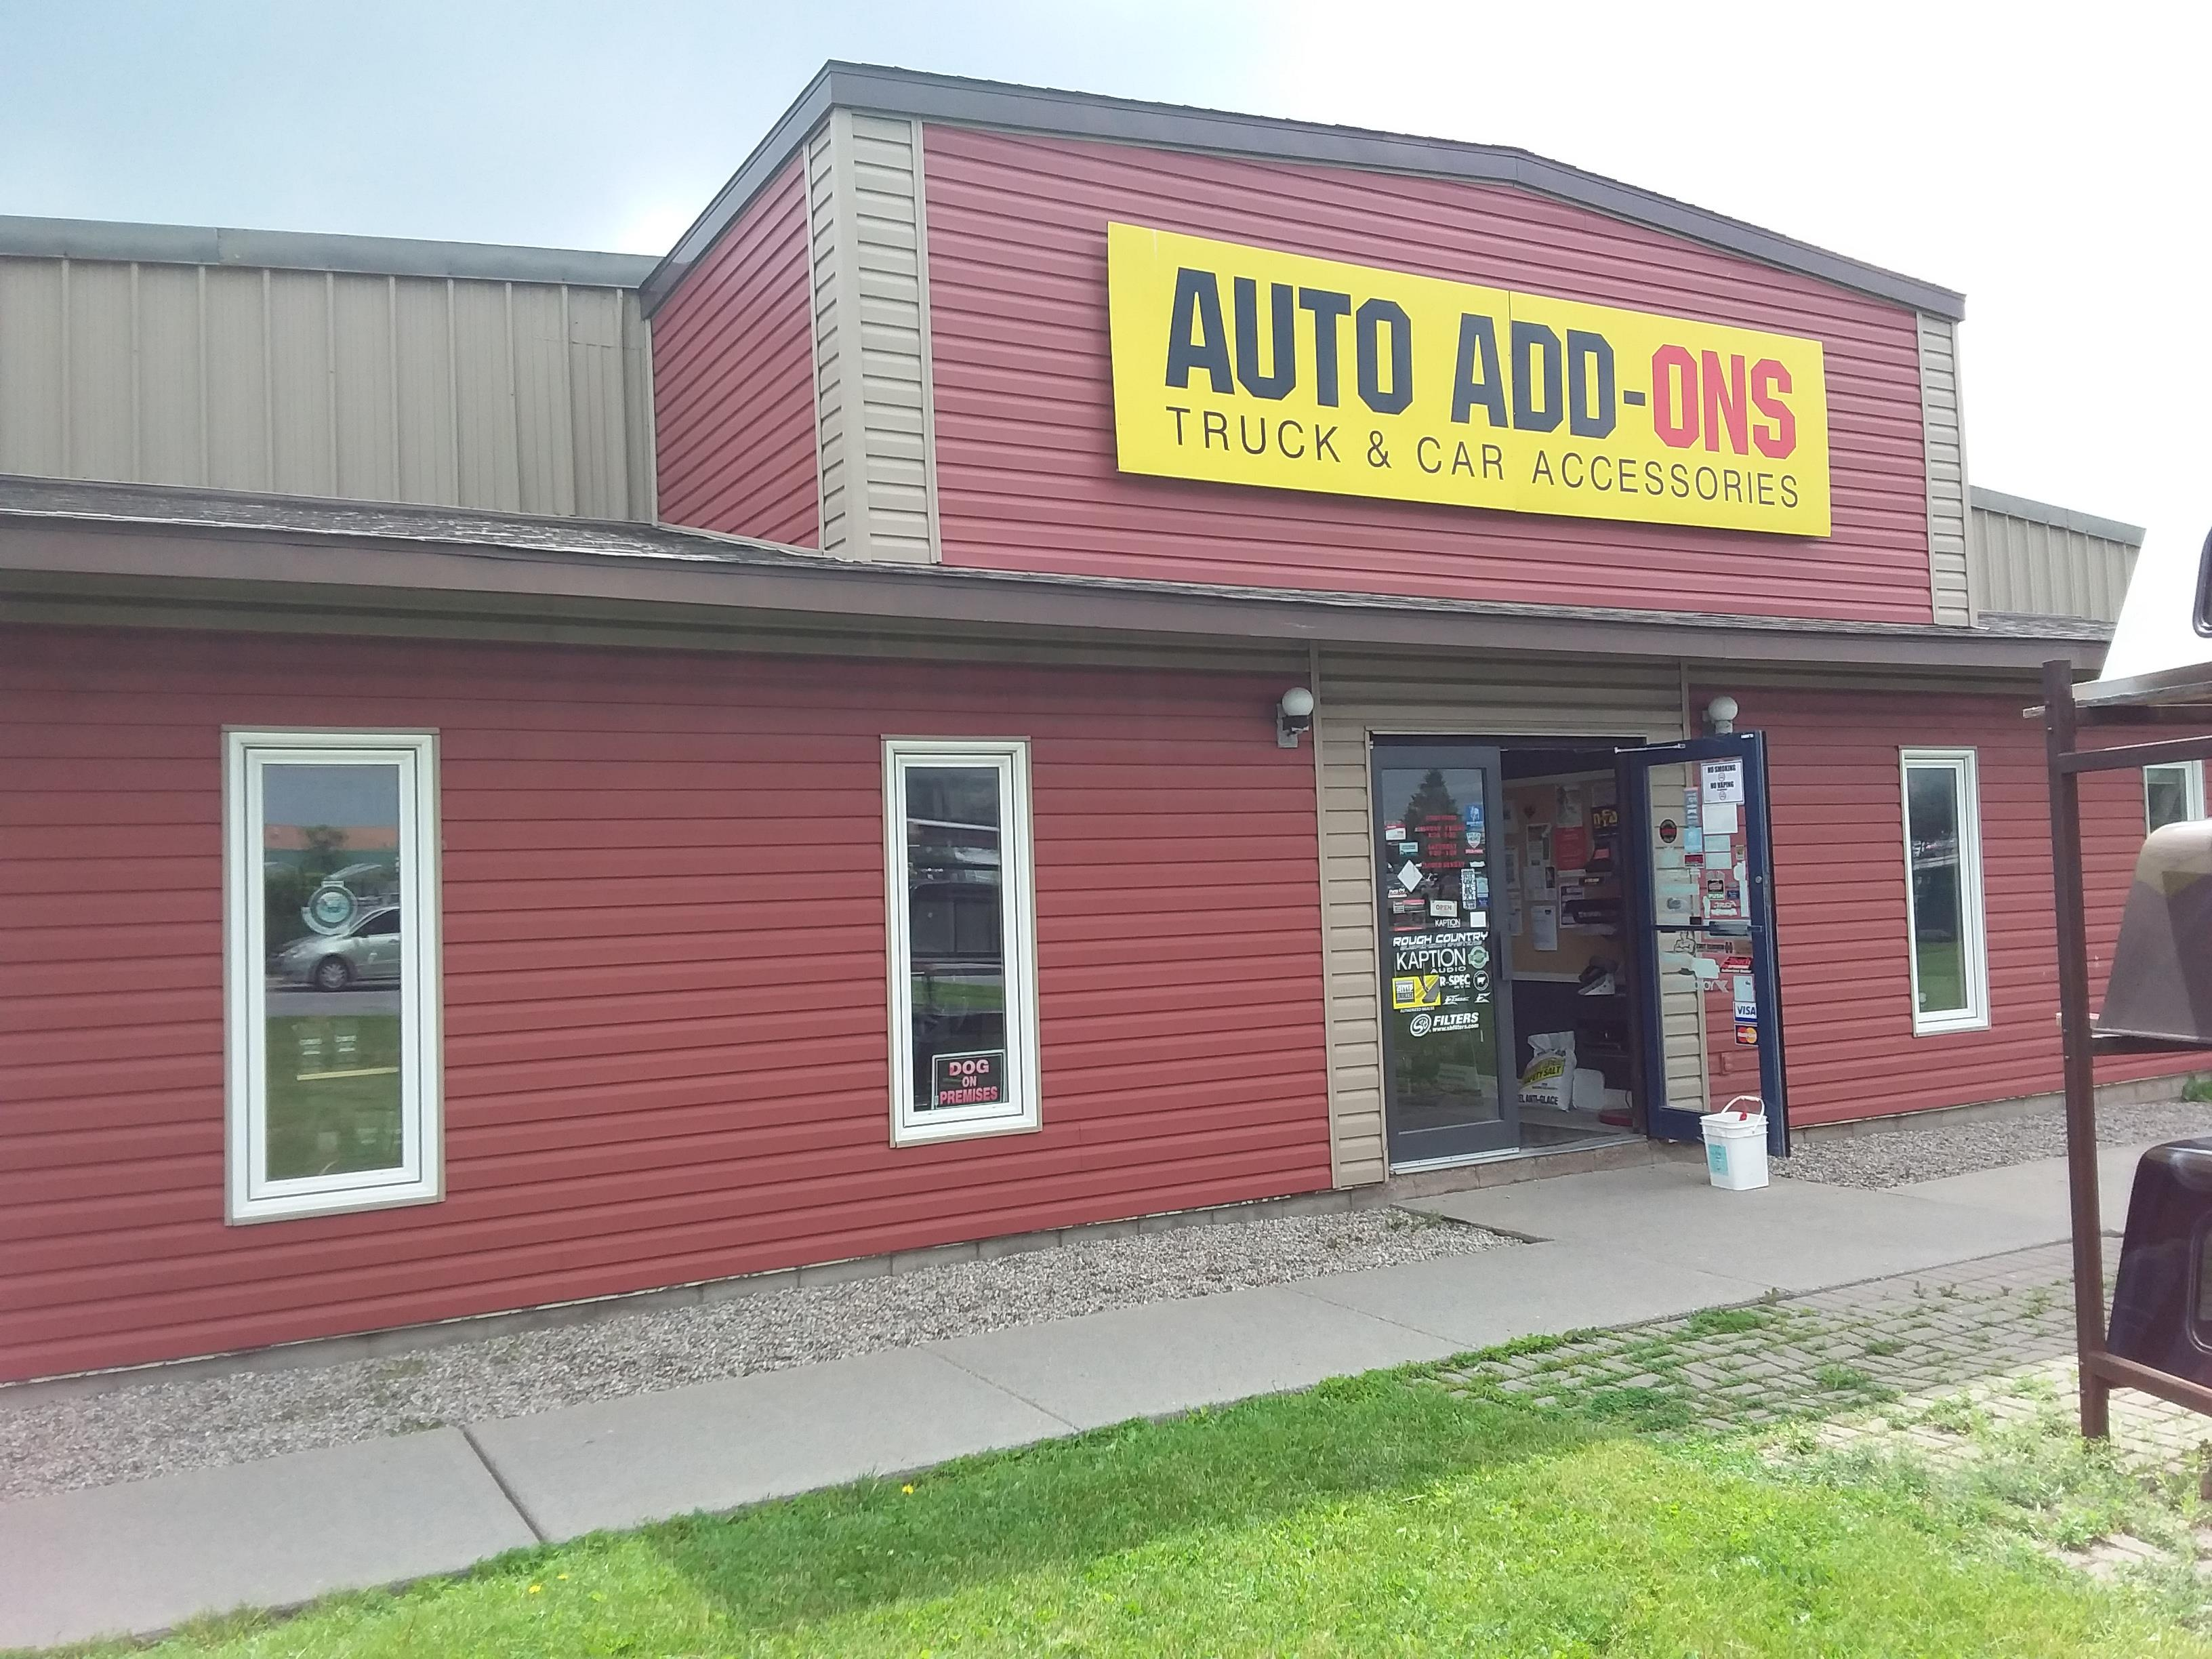 Auto Add-Ons in Kingston, ON